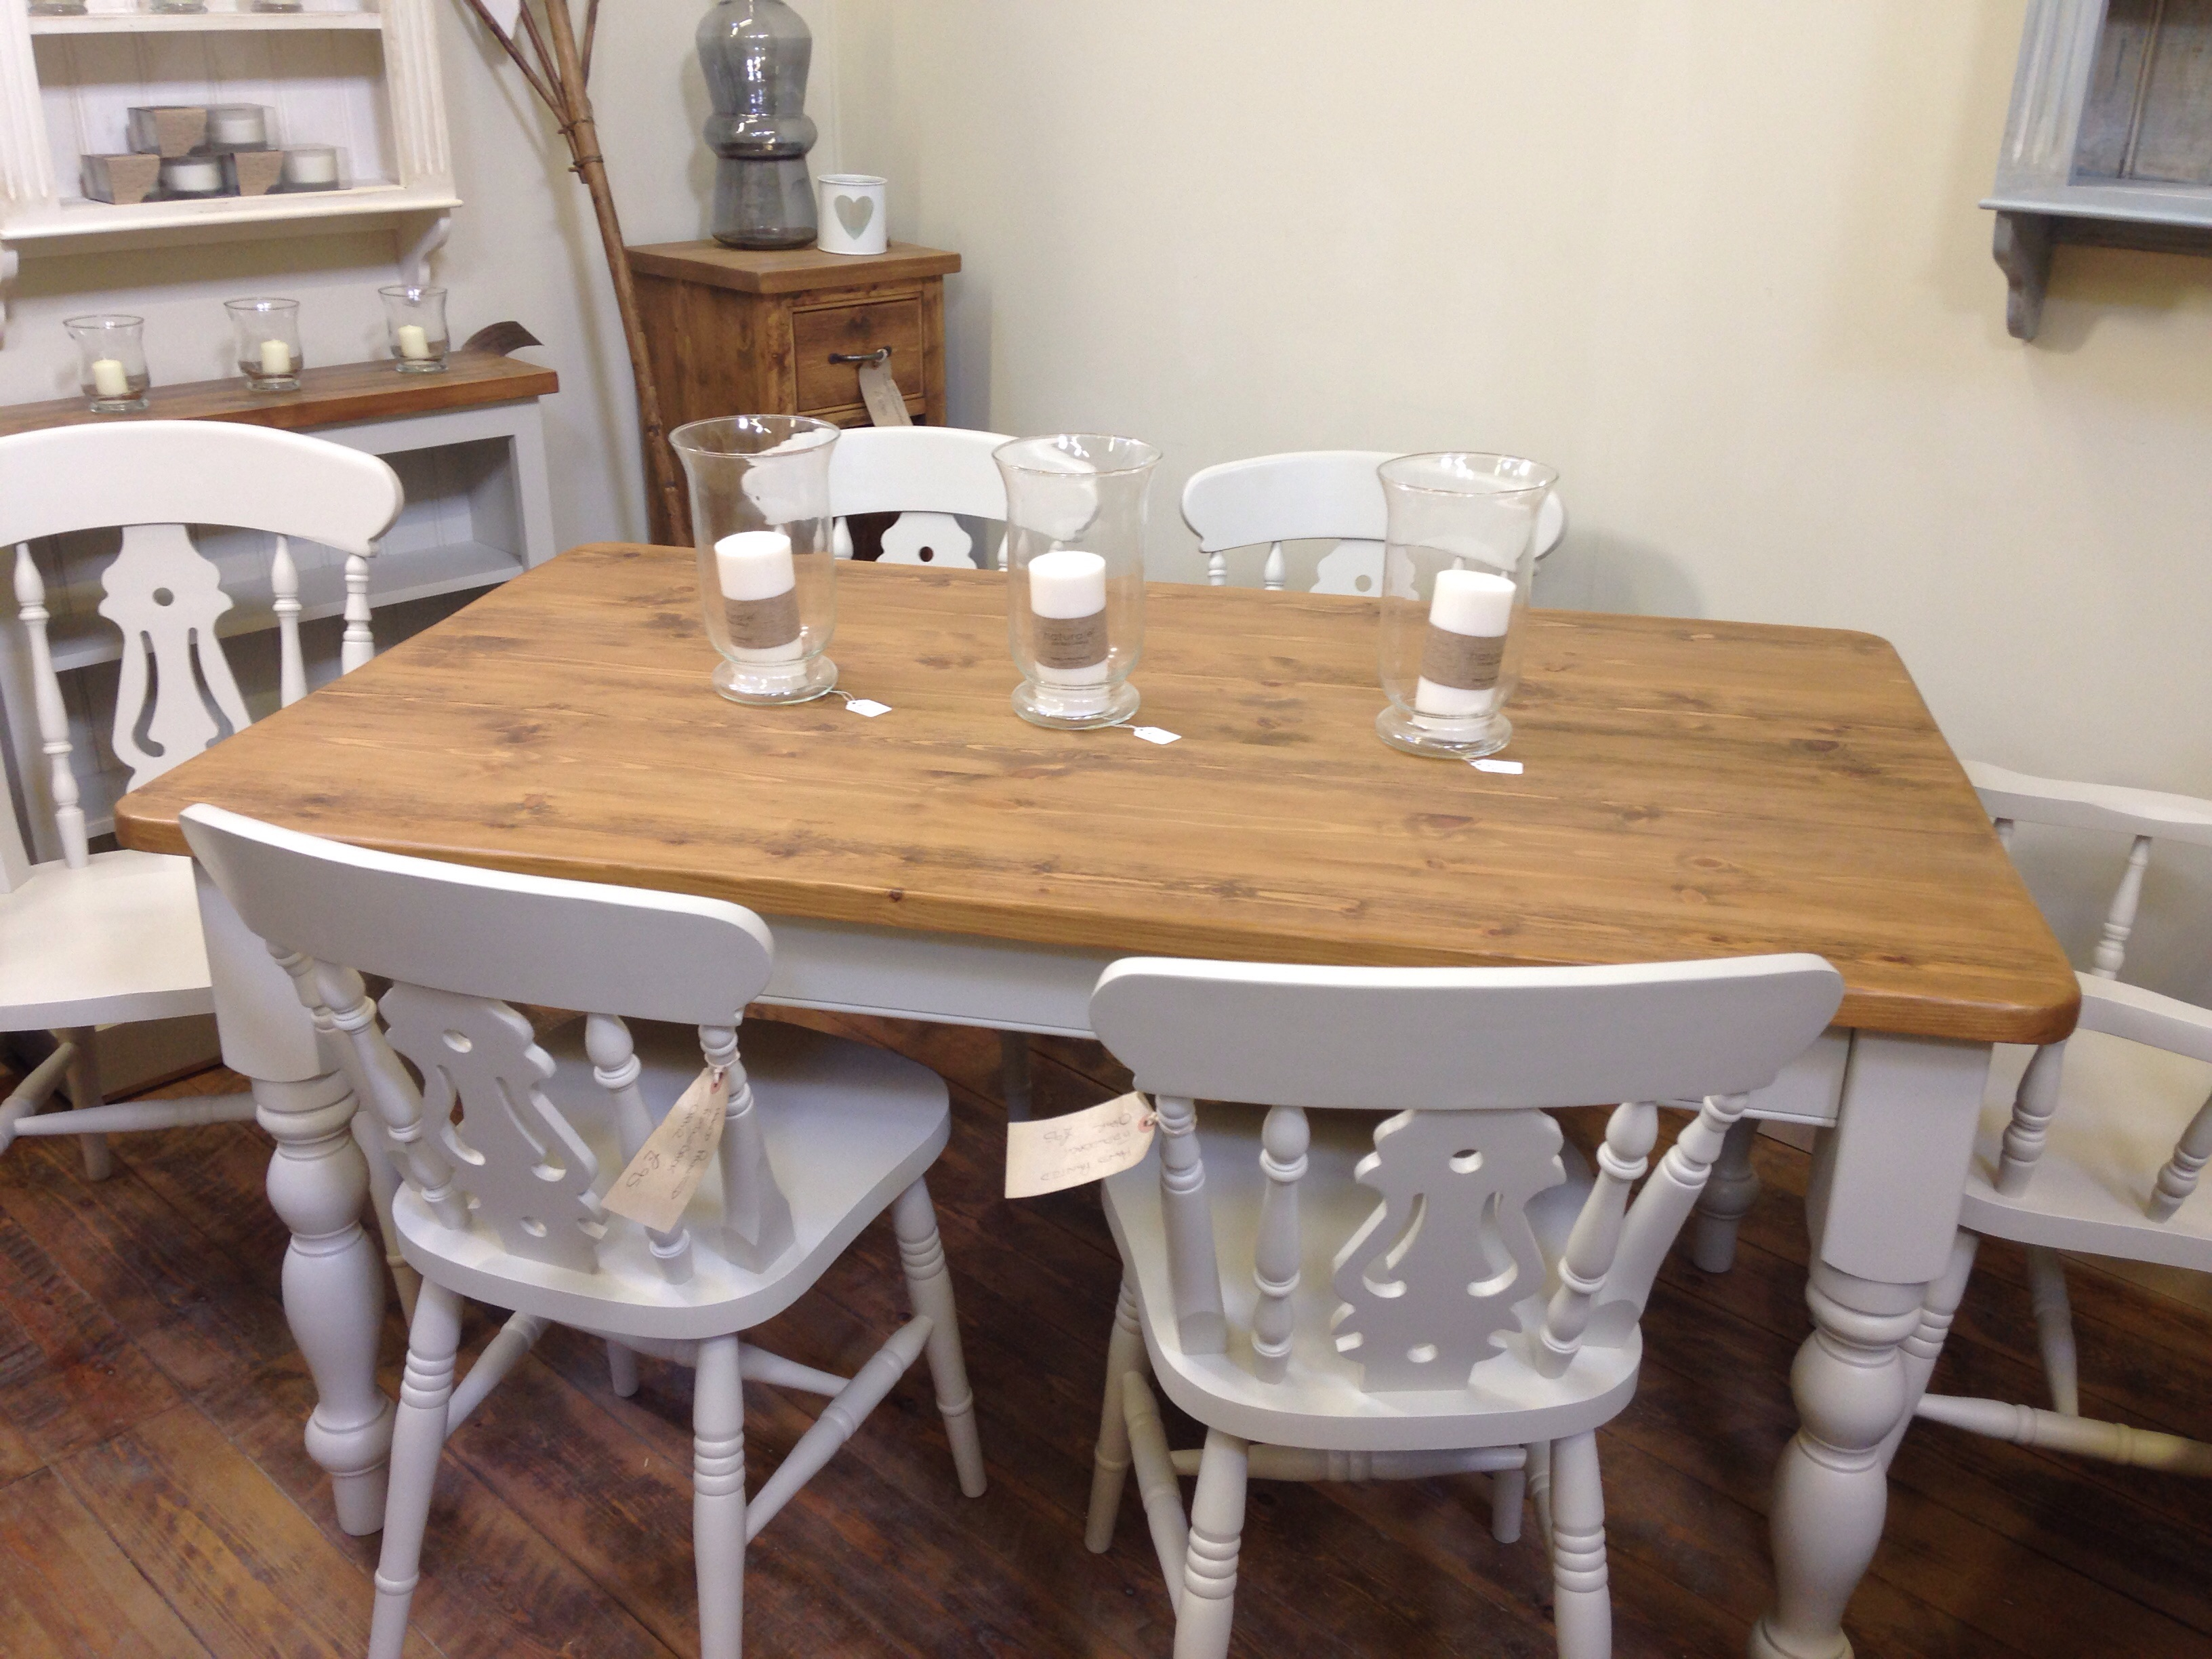 Farmhouse Dining Table & Chairs Wolds Furniture pany